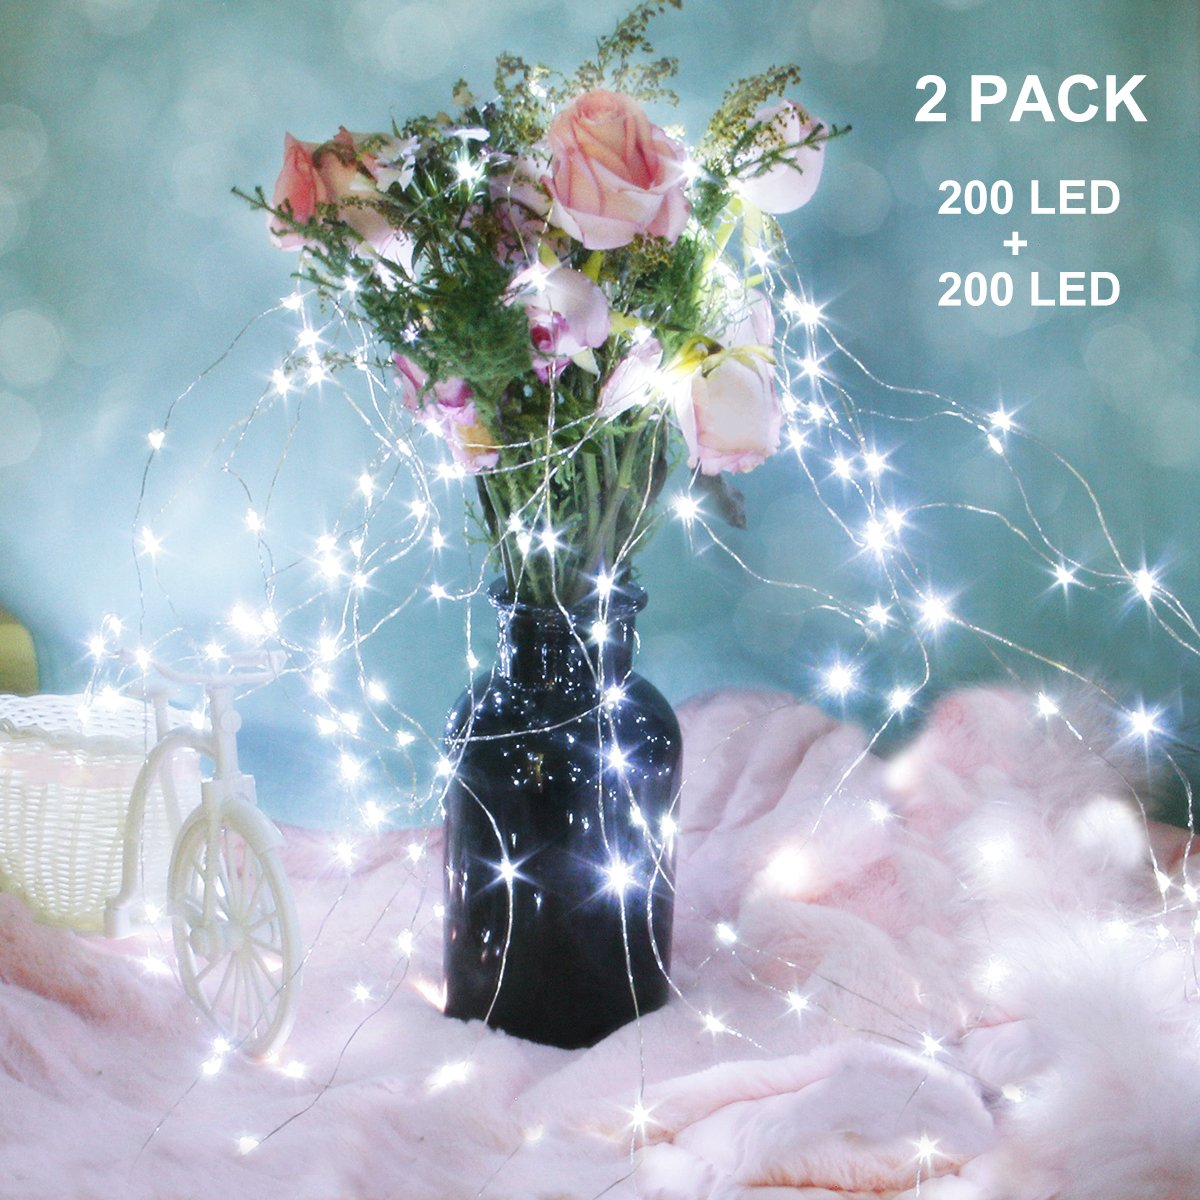 Binval Solar Fairy String Lights, 72ft 200Led, Copper Wire Led String Lights Ambiance lighting for Patio, Lawn, Garden, Landscape, Home, Wedding, Christmas Party, Xmas Tree, Waterproof (White,2-Pack)